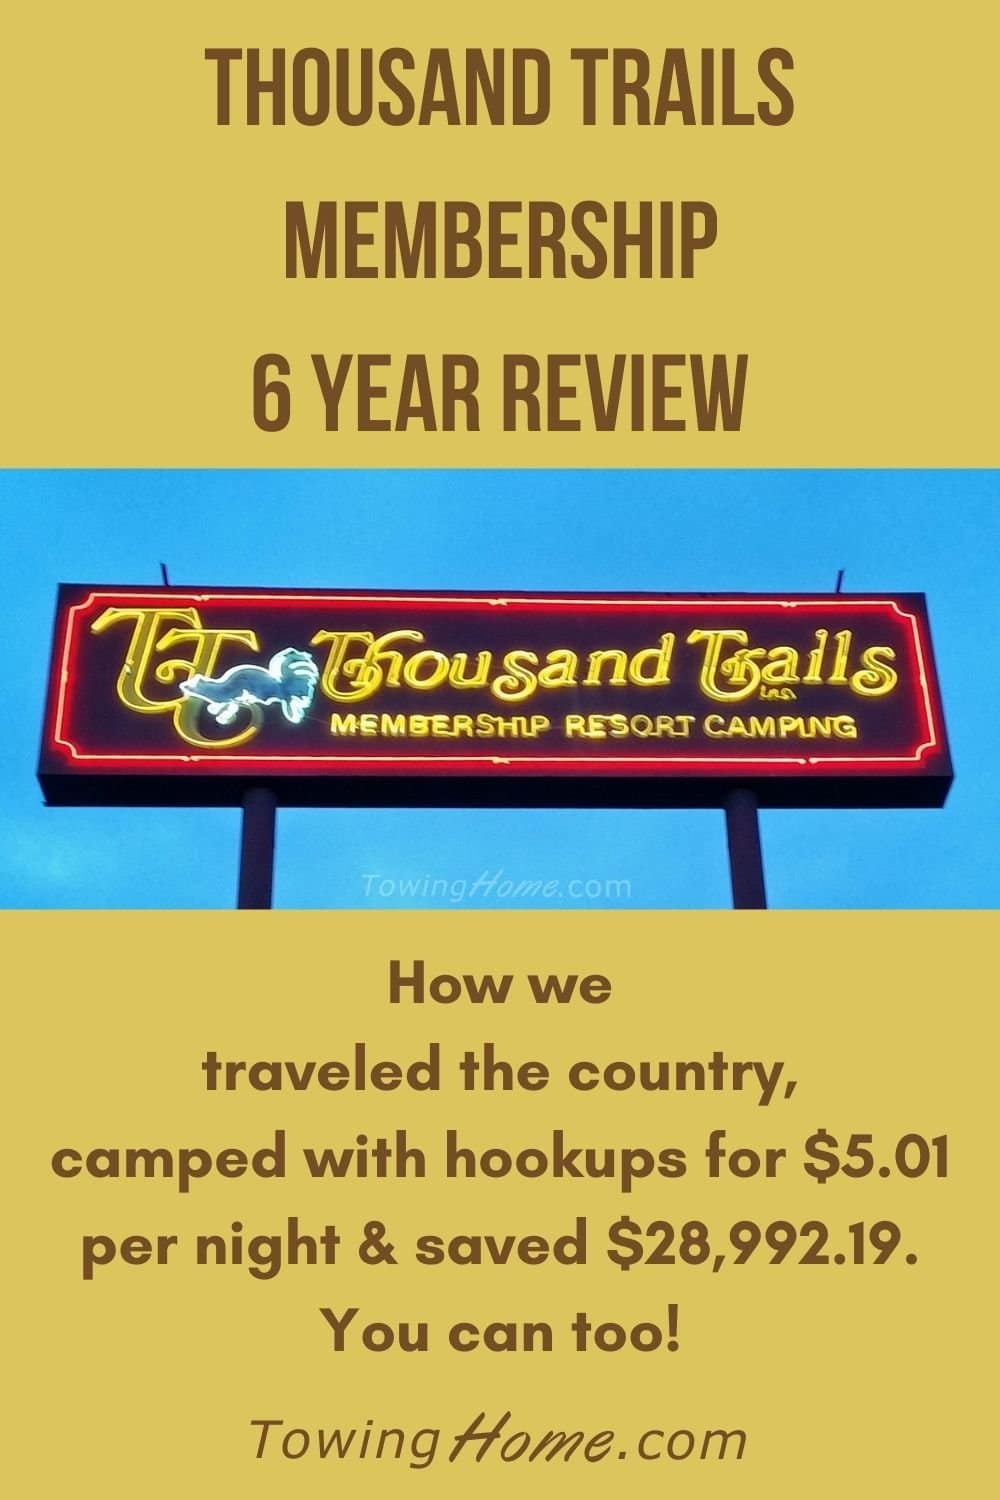 Thousand Trails Membership Review - Year 6